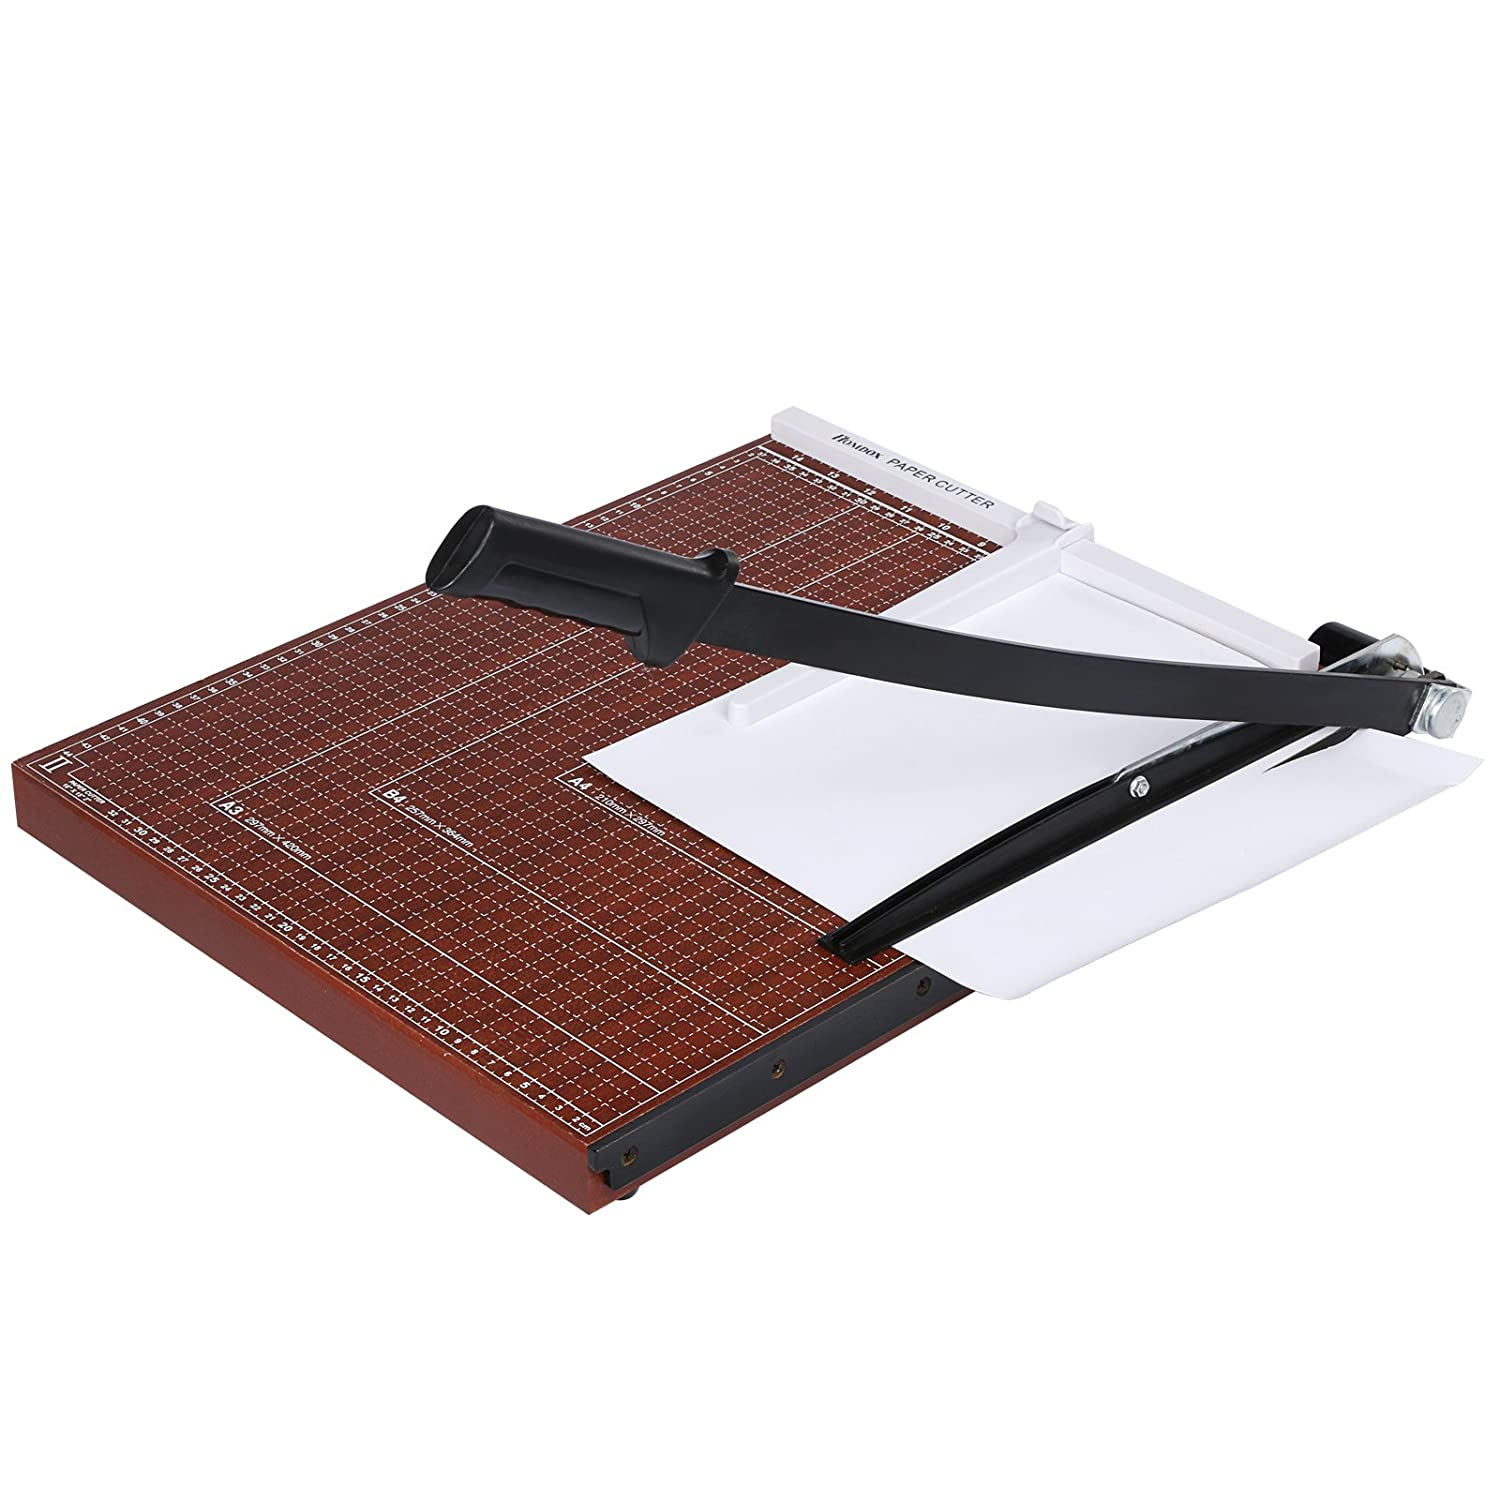 "Homdox Paper Cutter 18"" A3 Paper Trimmer and Guillotine"